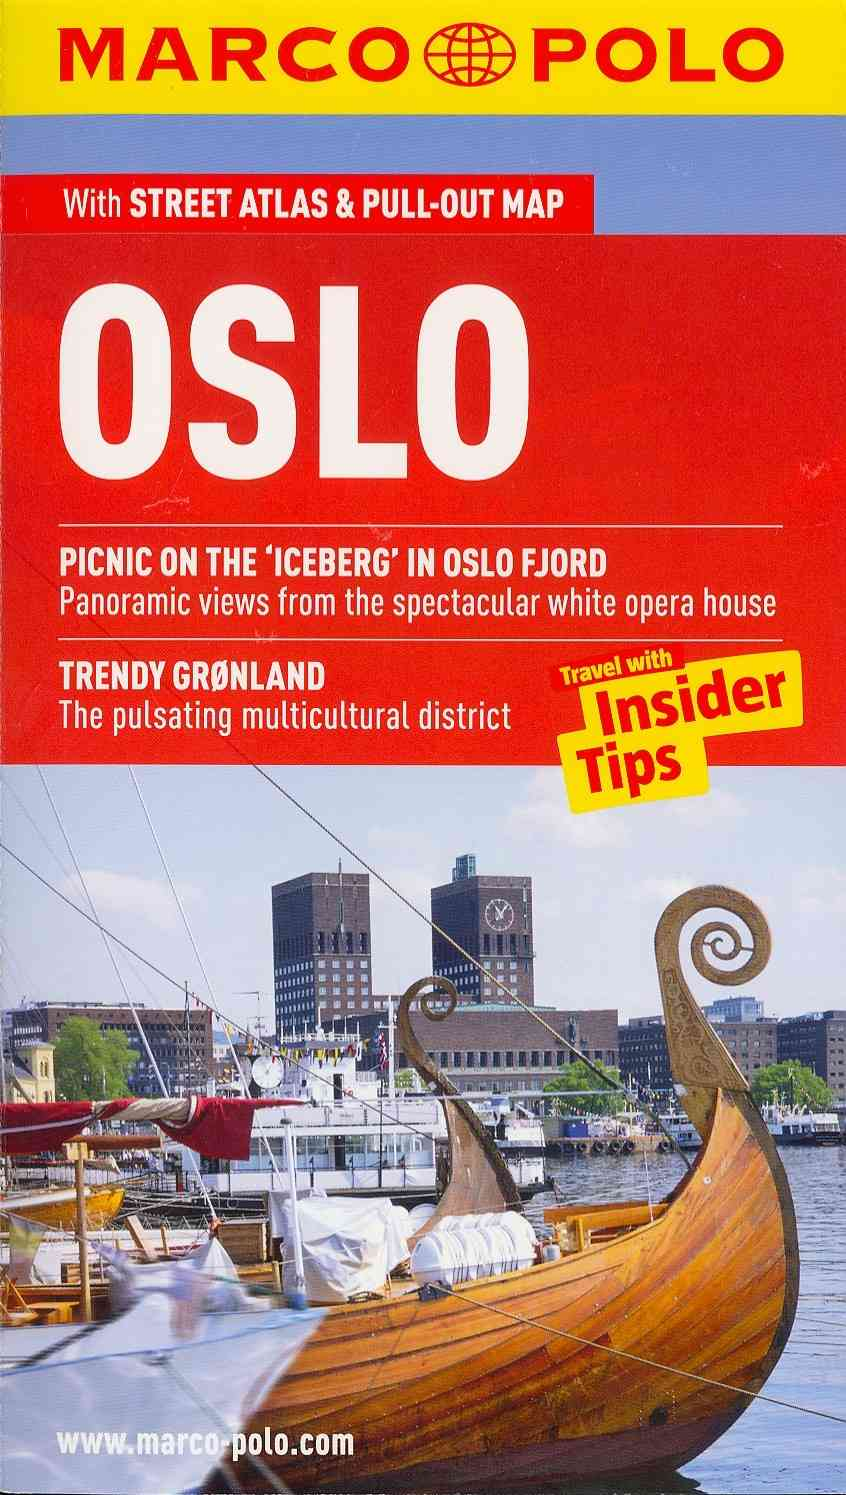 Oslo Marco Polo Guide By Marco Polo (EDT)